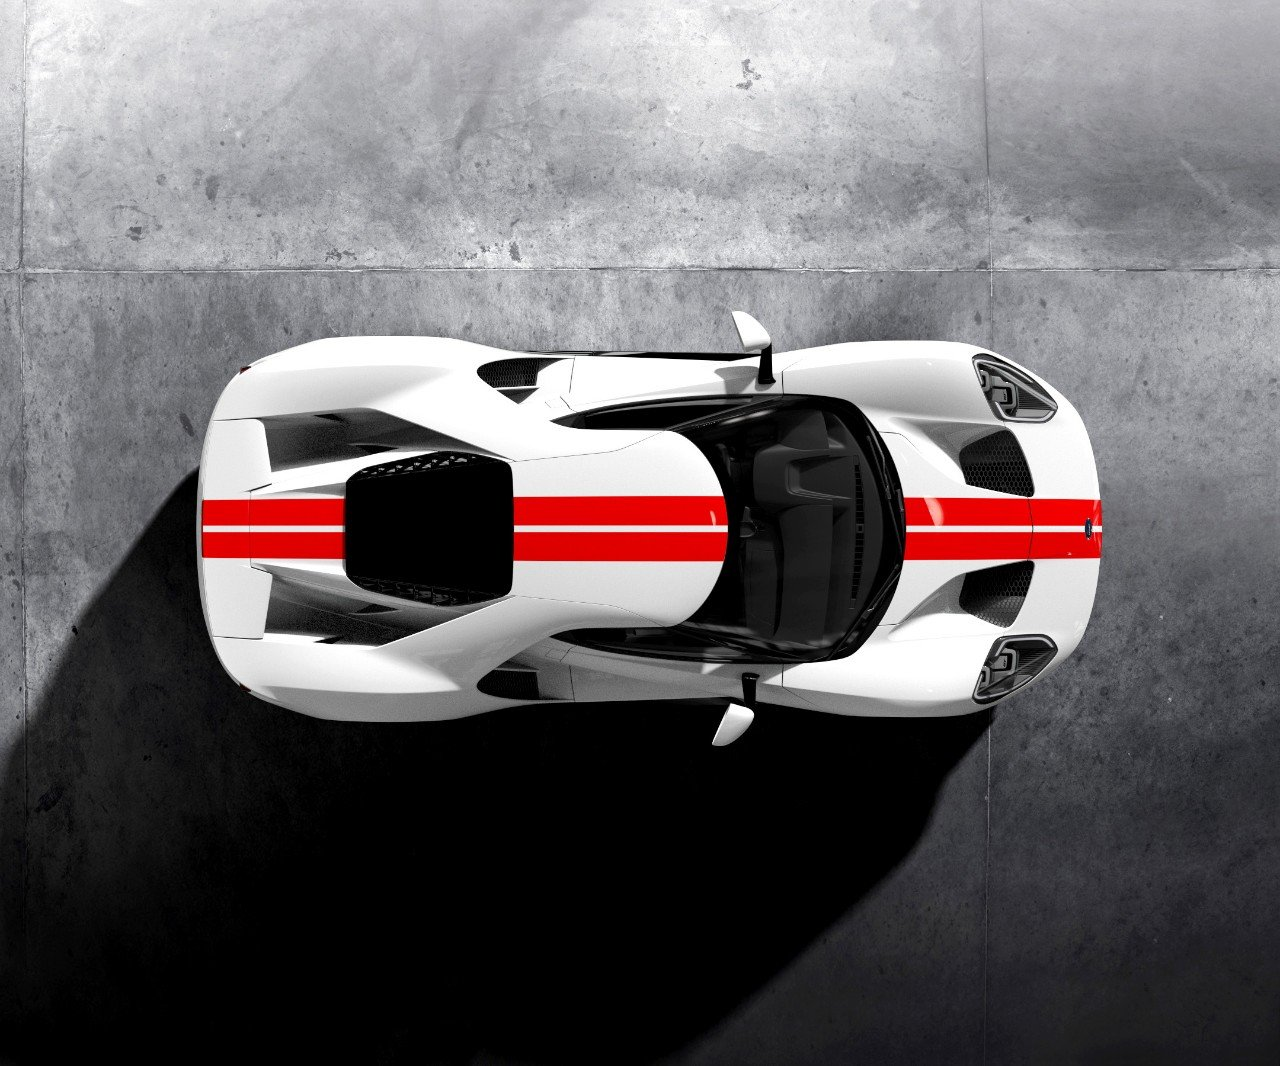 Ford Says Sorry to 6,000 Ford GT Applicants